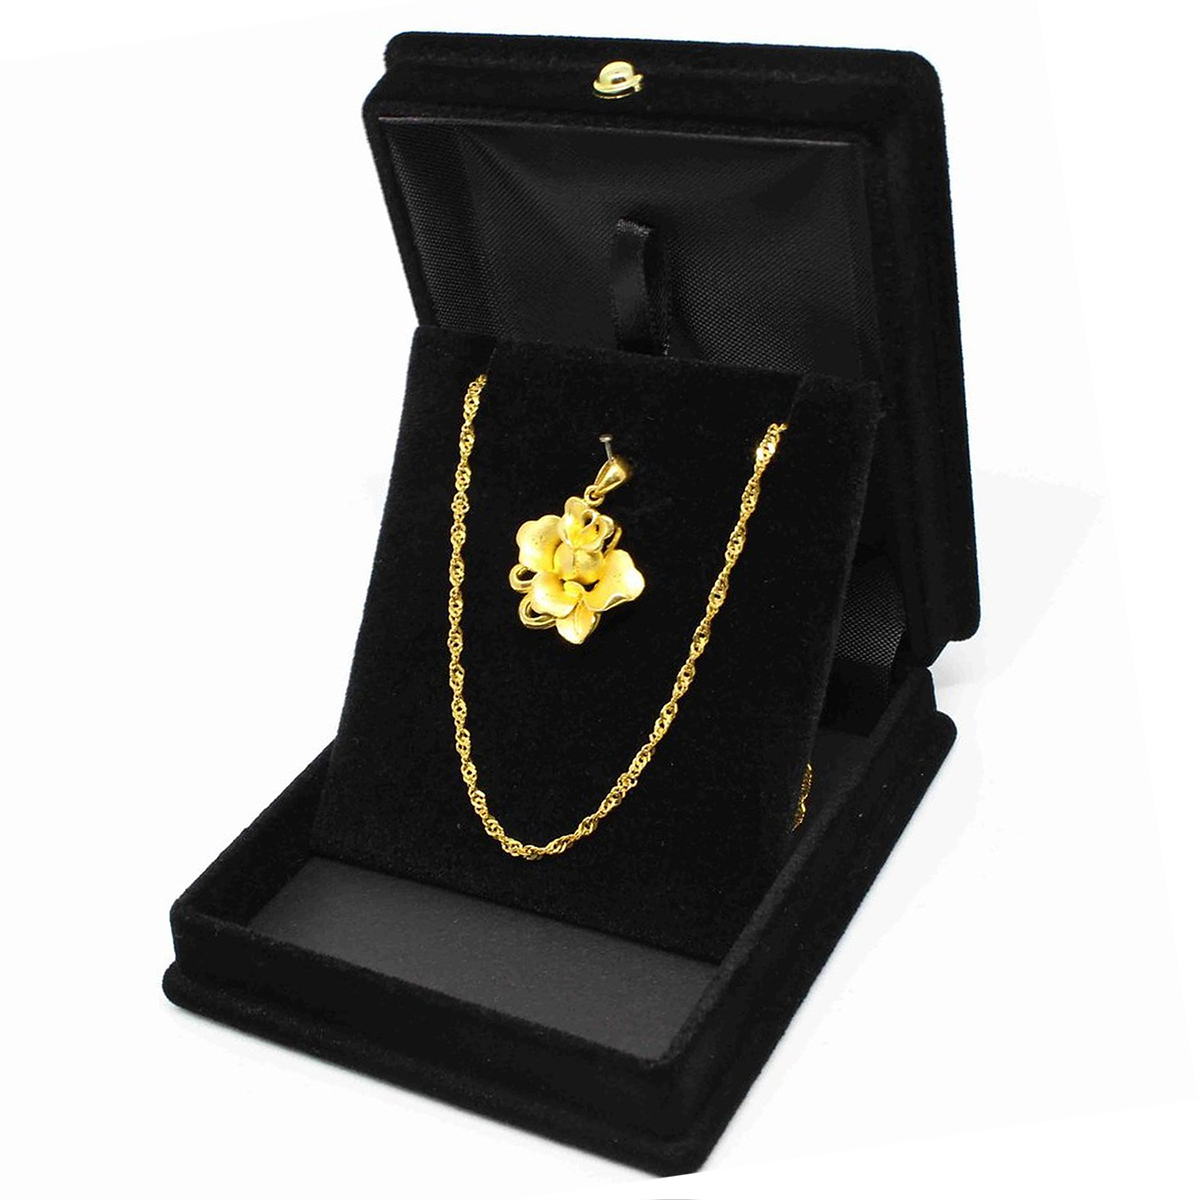 Velvet Necklace Chain Jewelry Display Storage Box Case